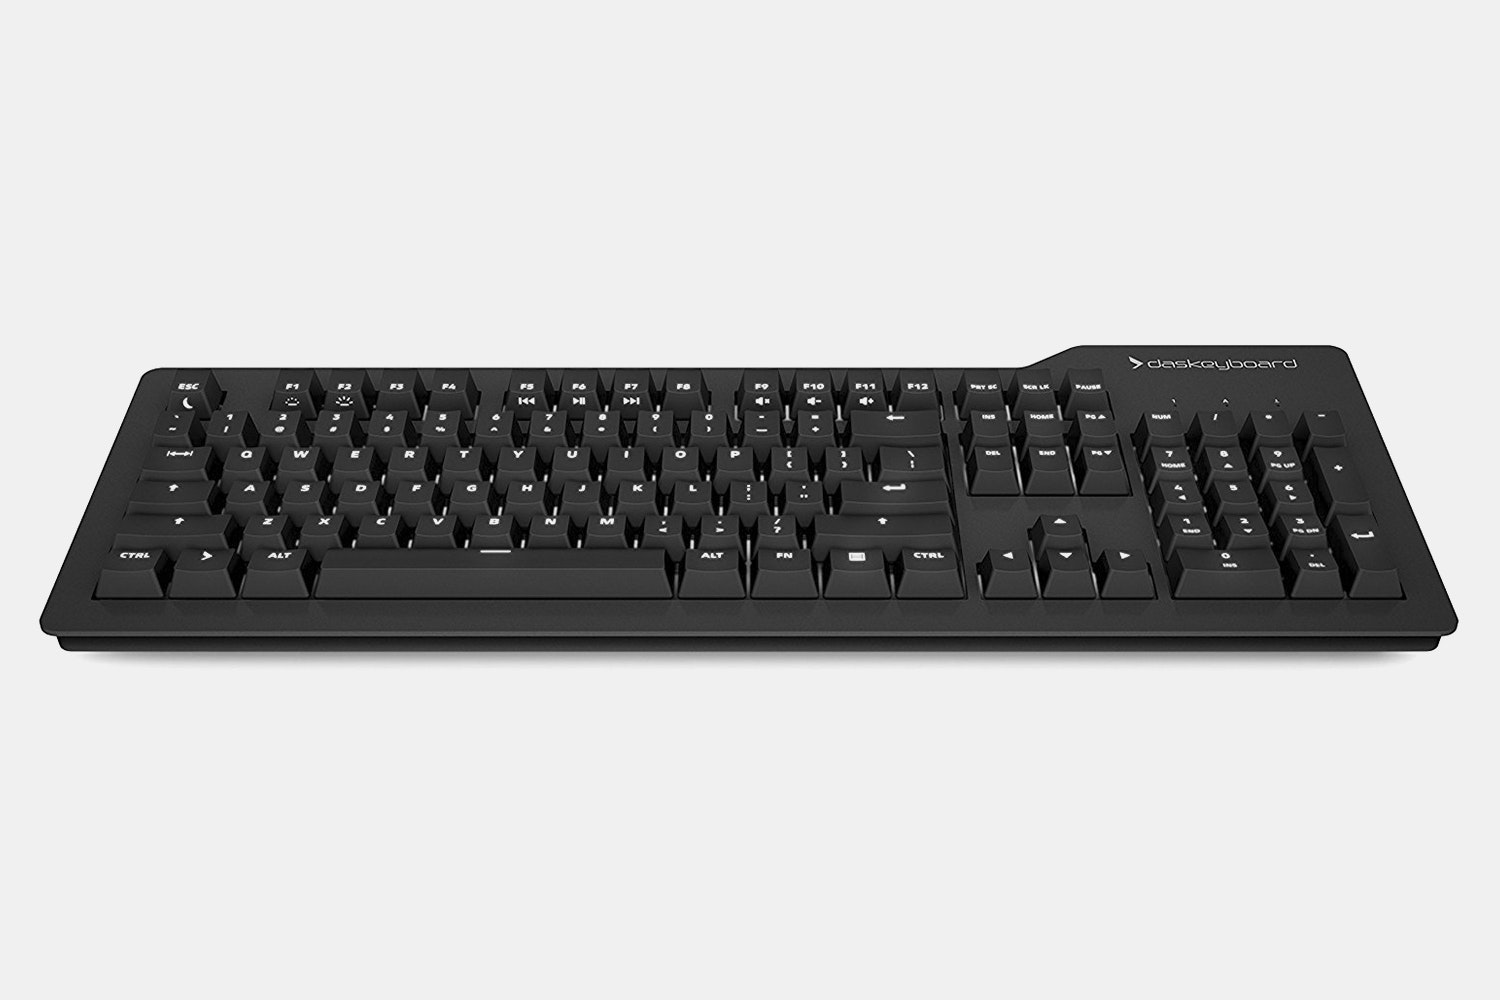 Das Keyboard Prime 13 Mechanical Keyboard